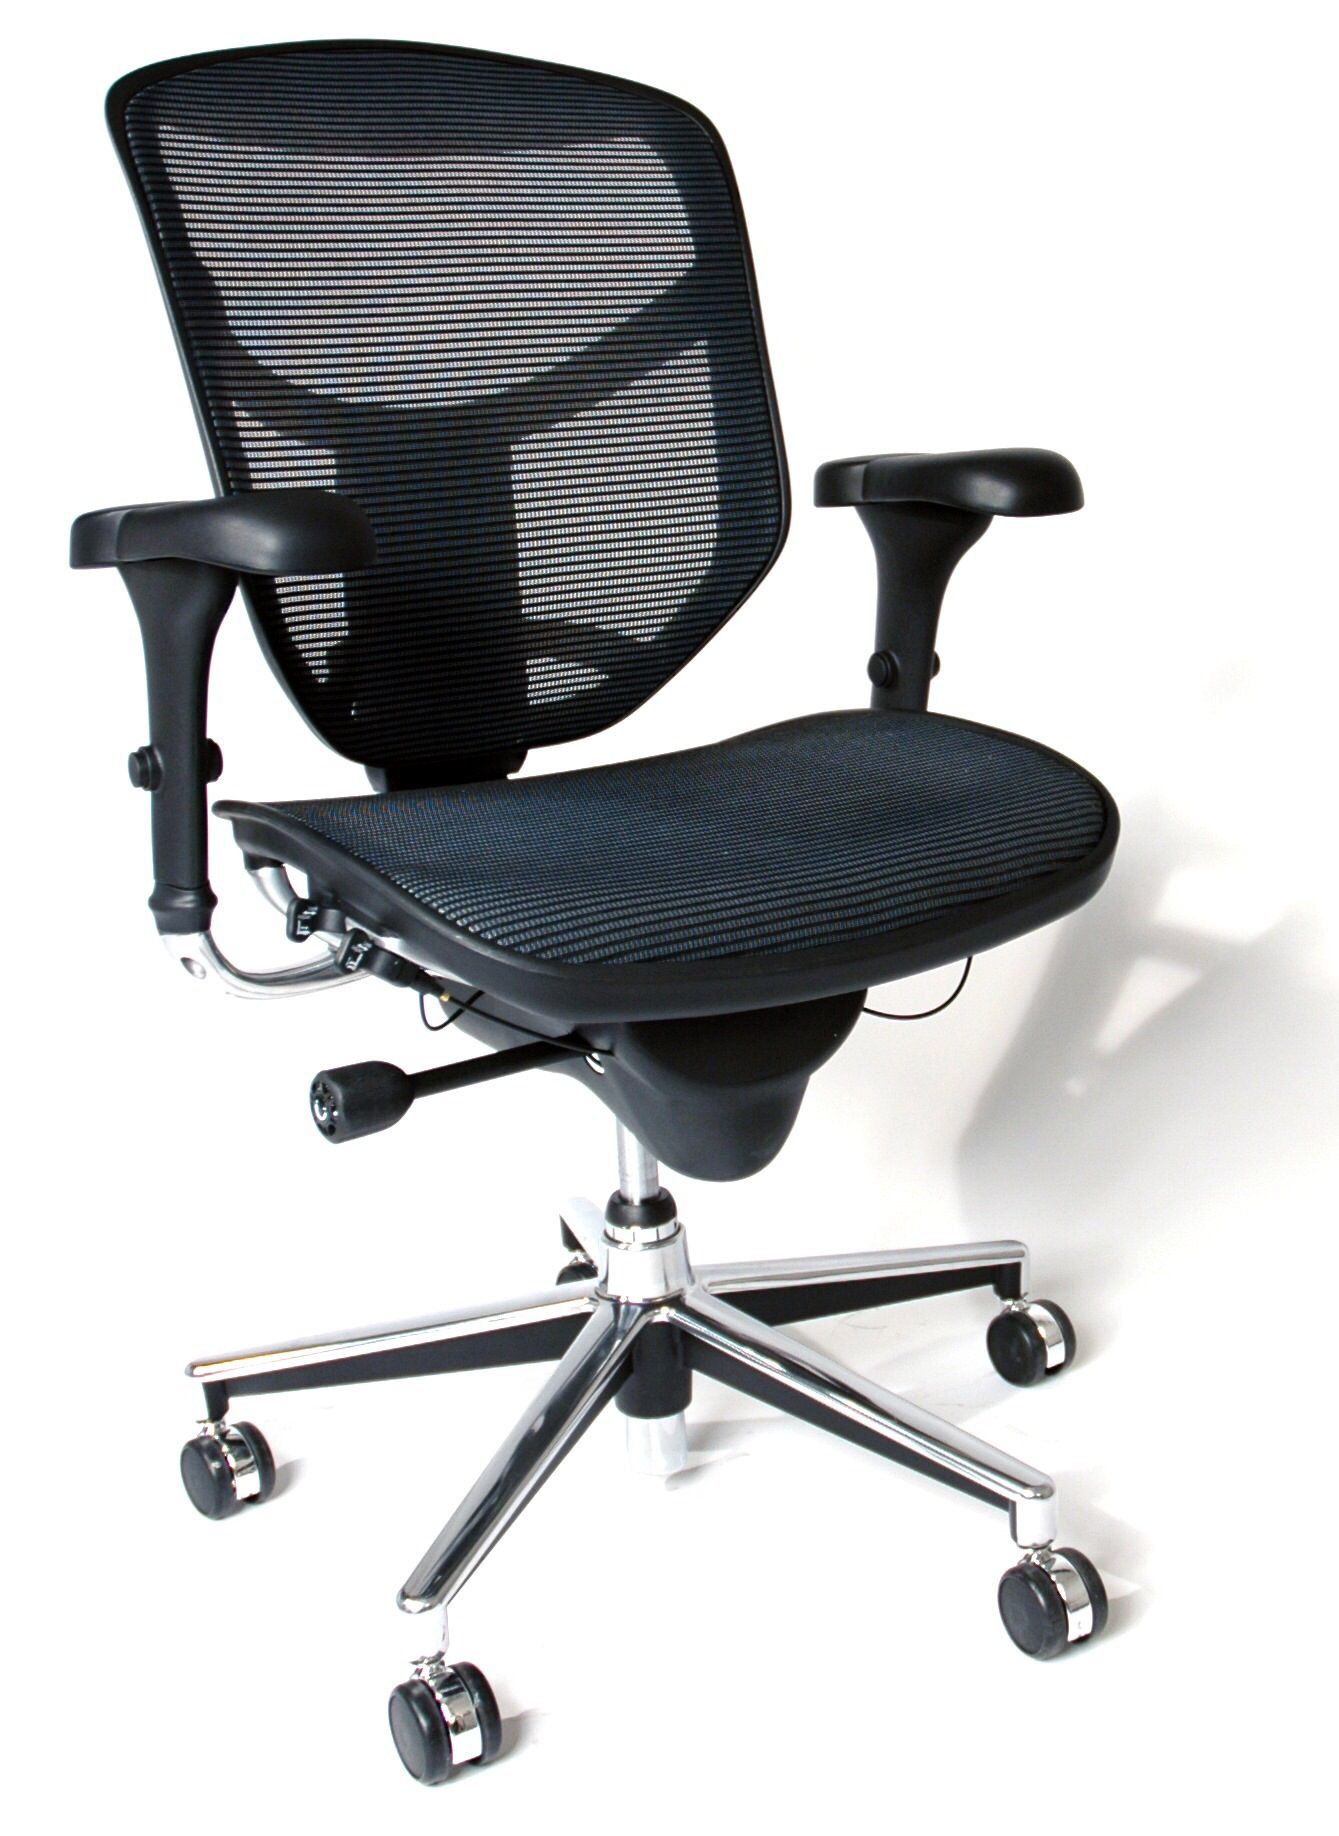 9 chairs black or white? Office chair, Ikea office